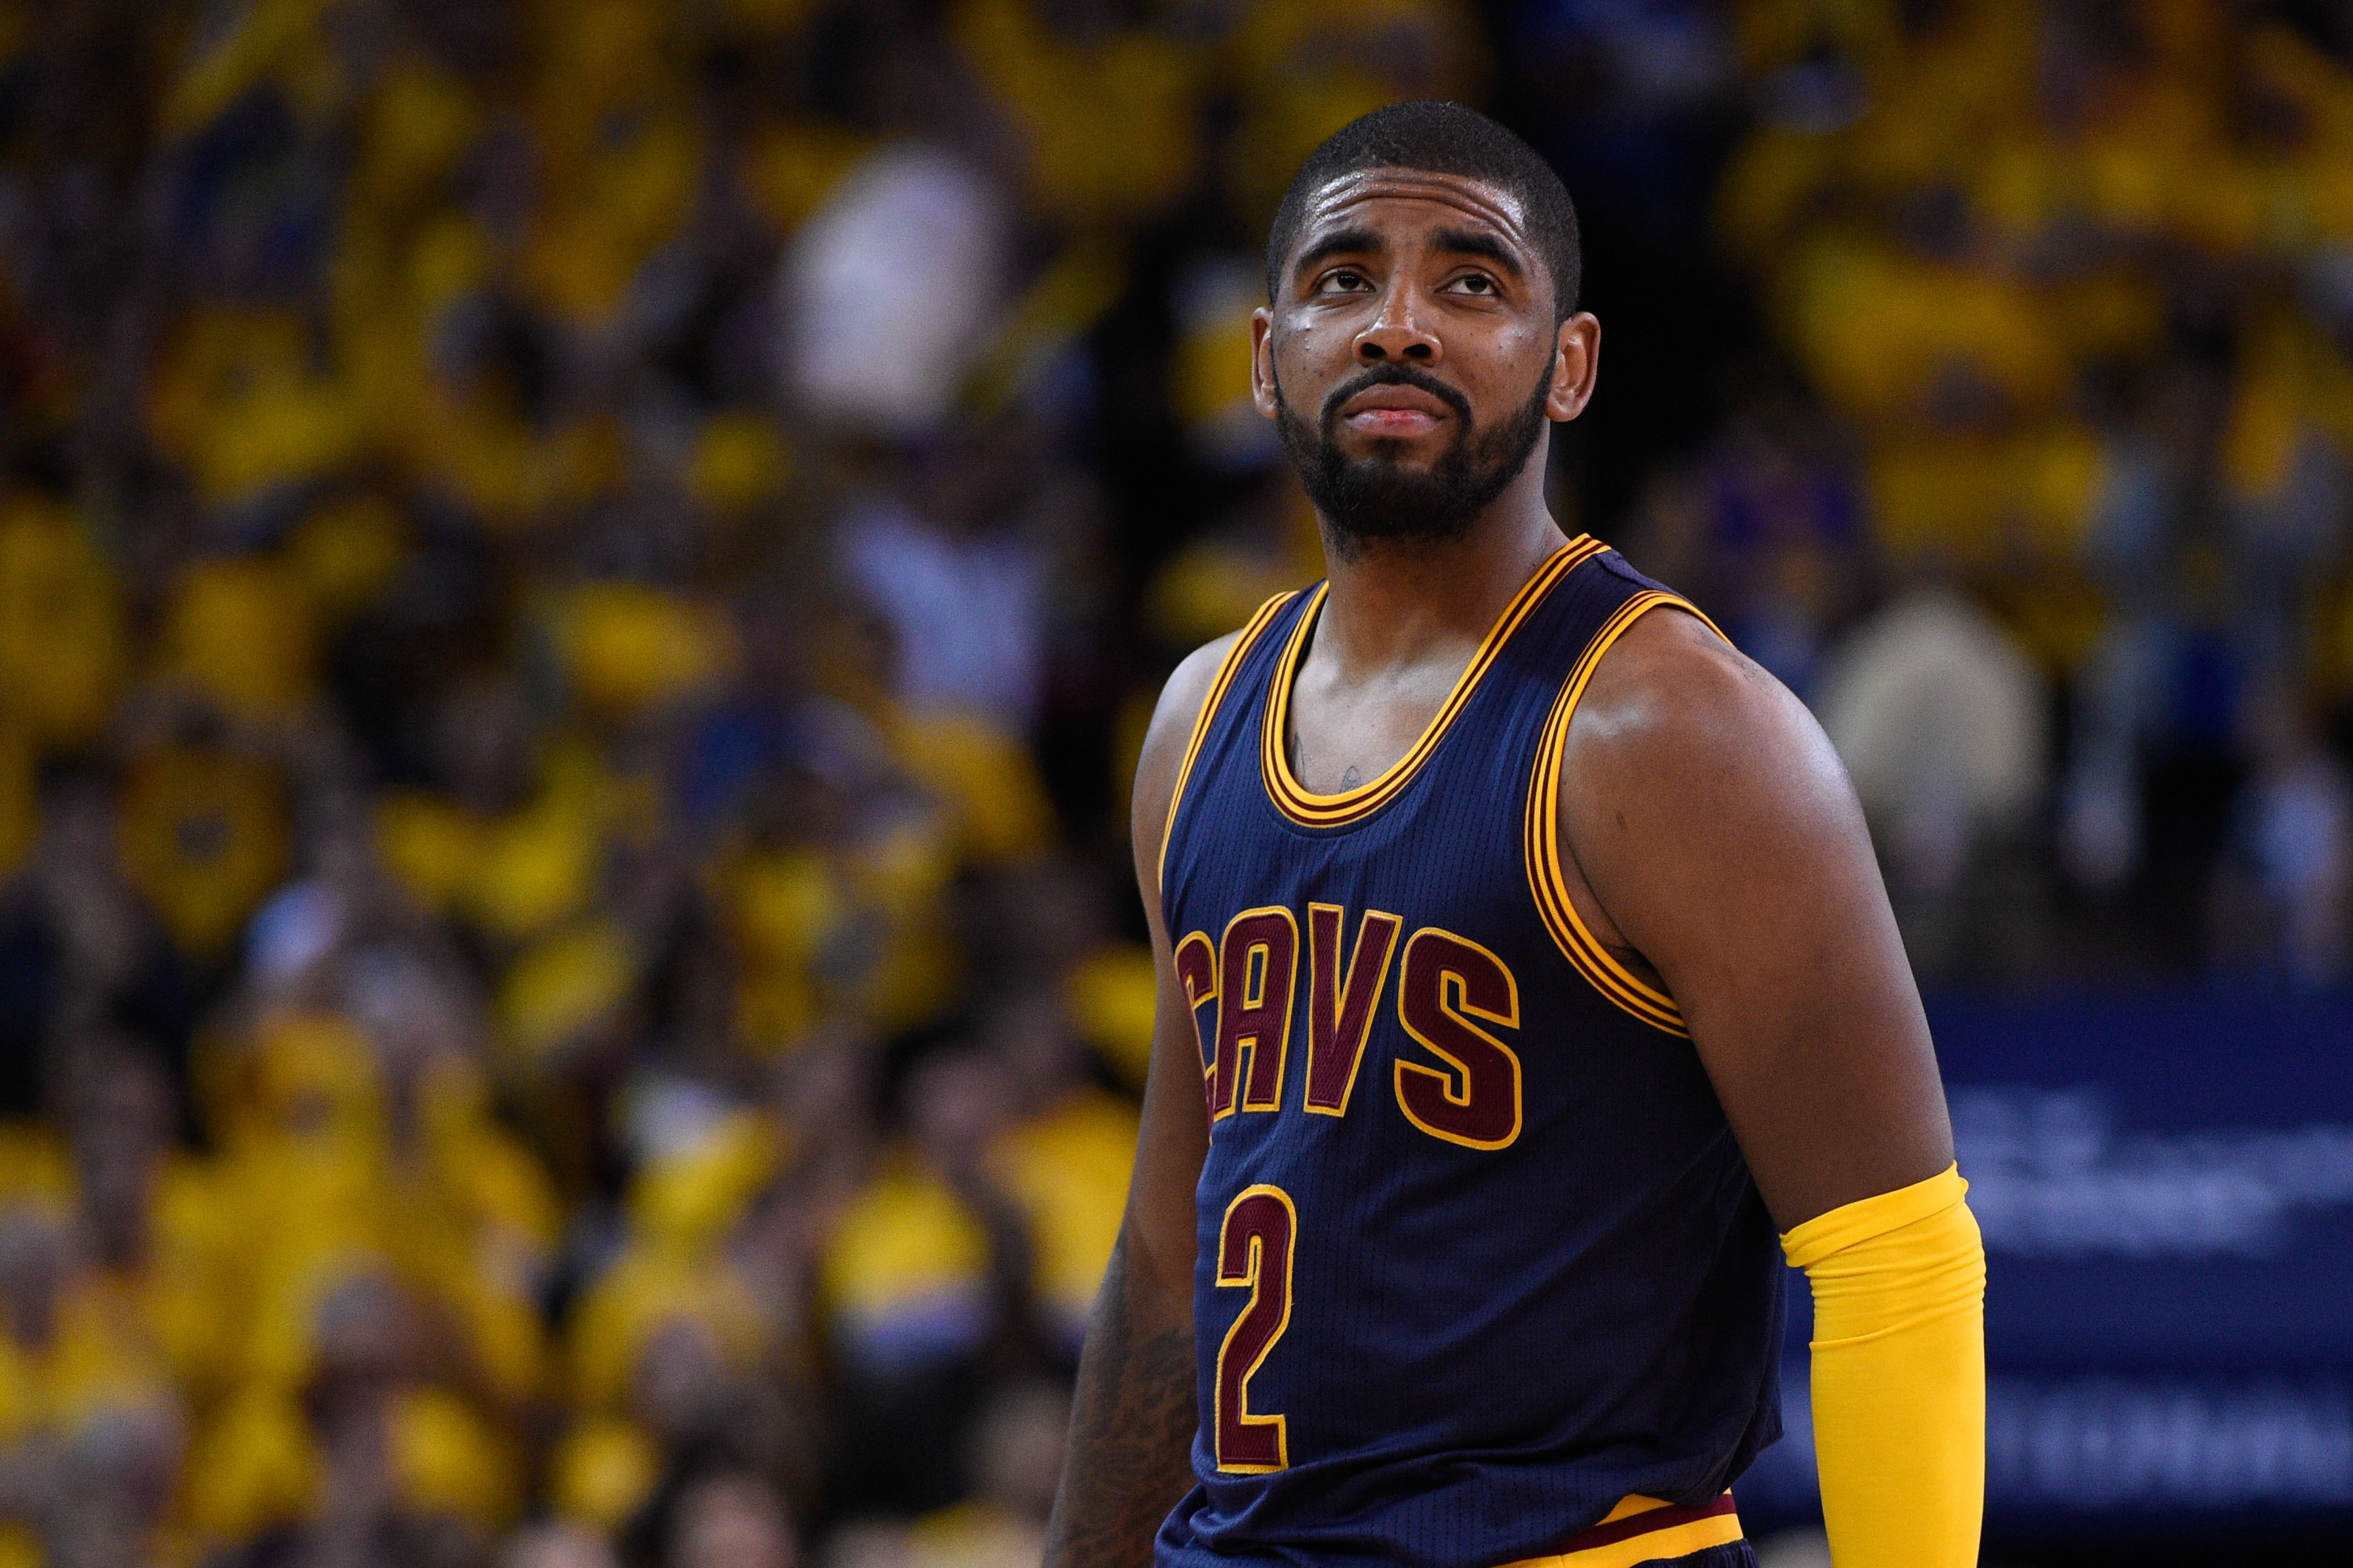 Kyrie Irving may not play until early 2016. (USATSI)